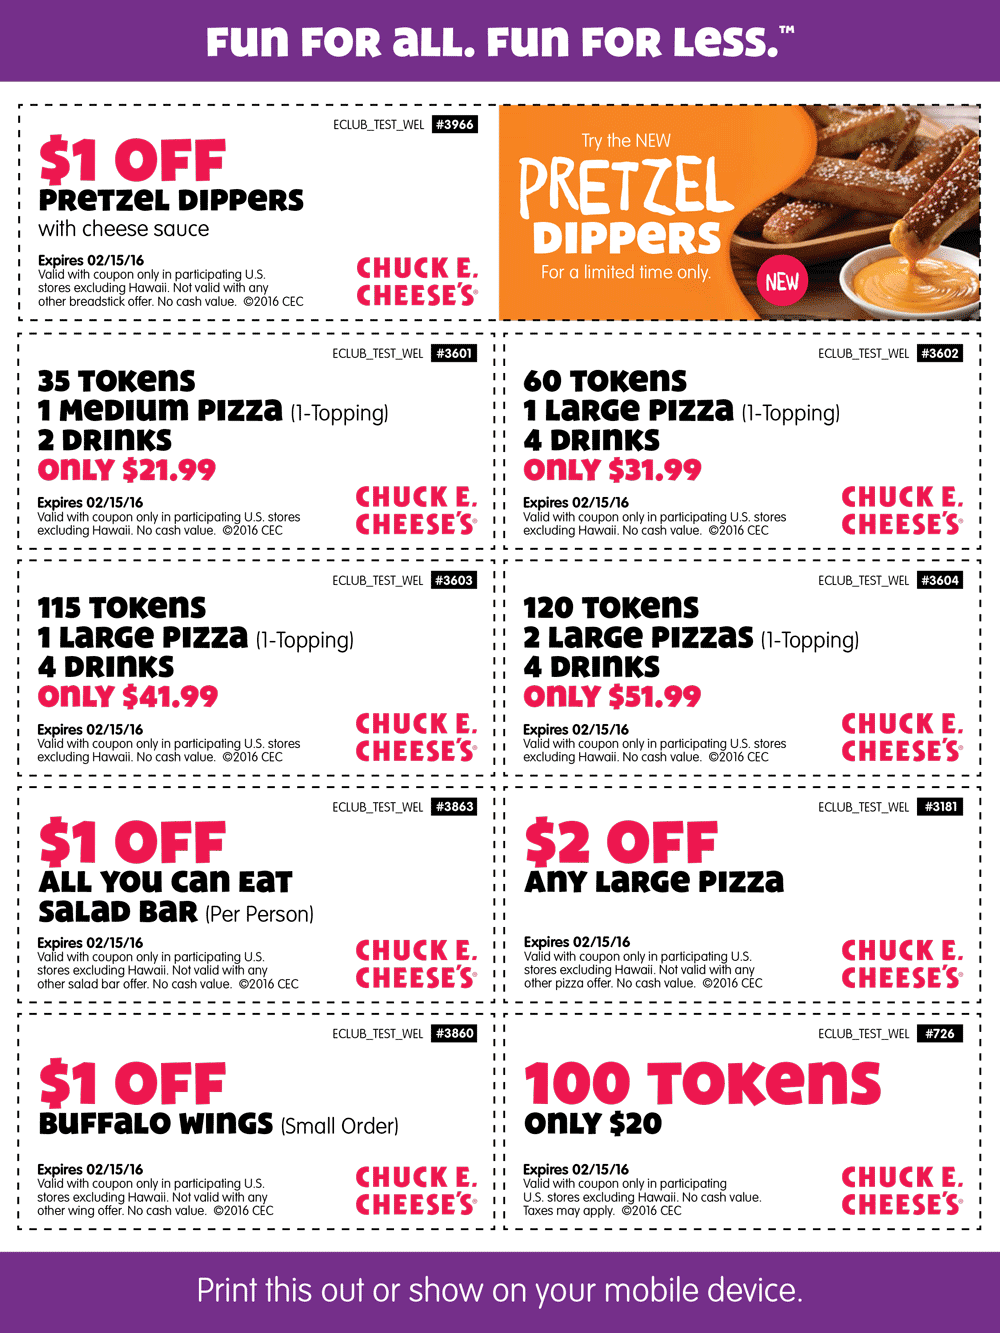 Chuck E. Cheese Coupon January 2019 100 tokens for $20 & more at Chuck E. Cheese